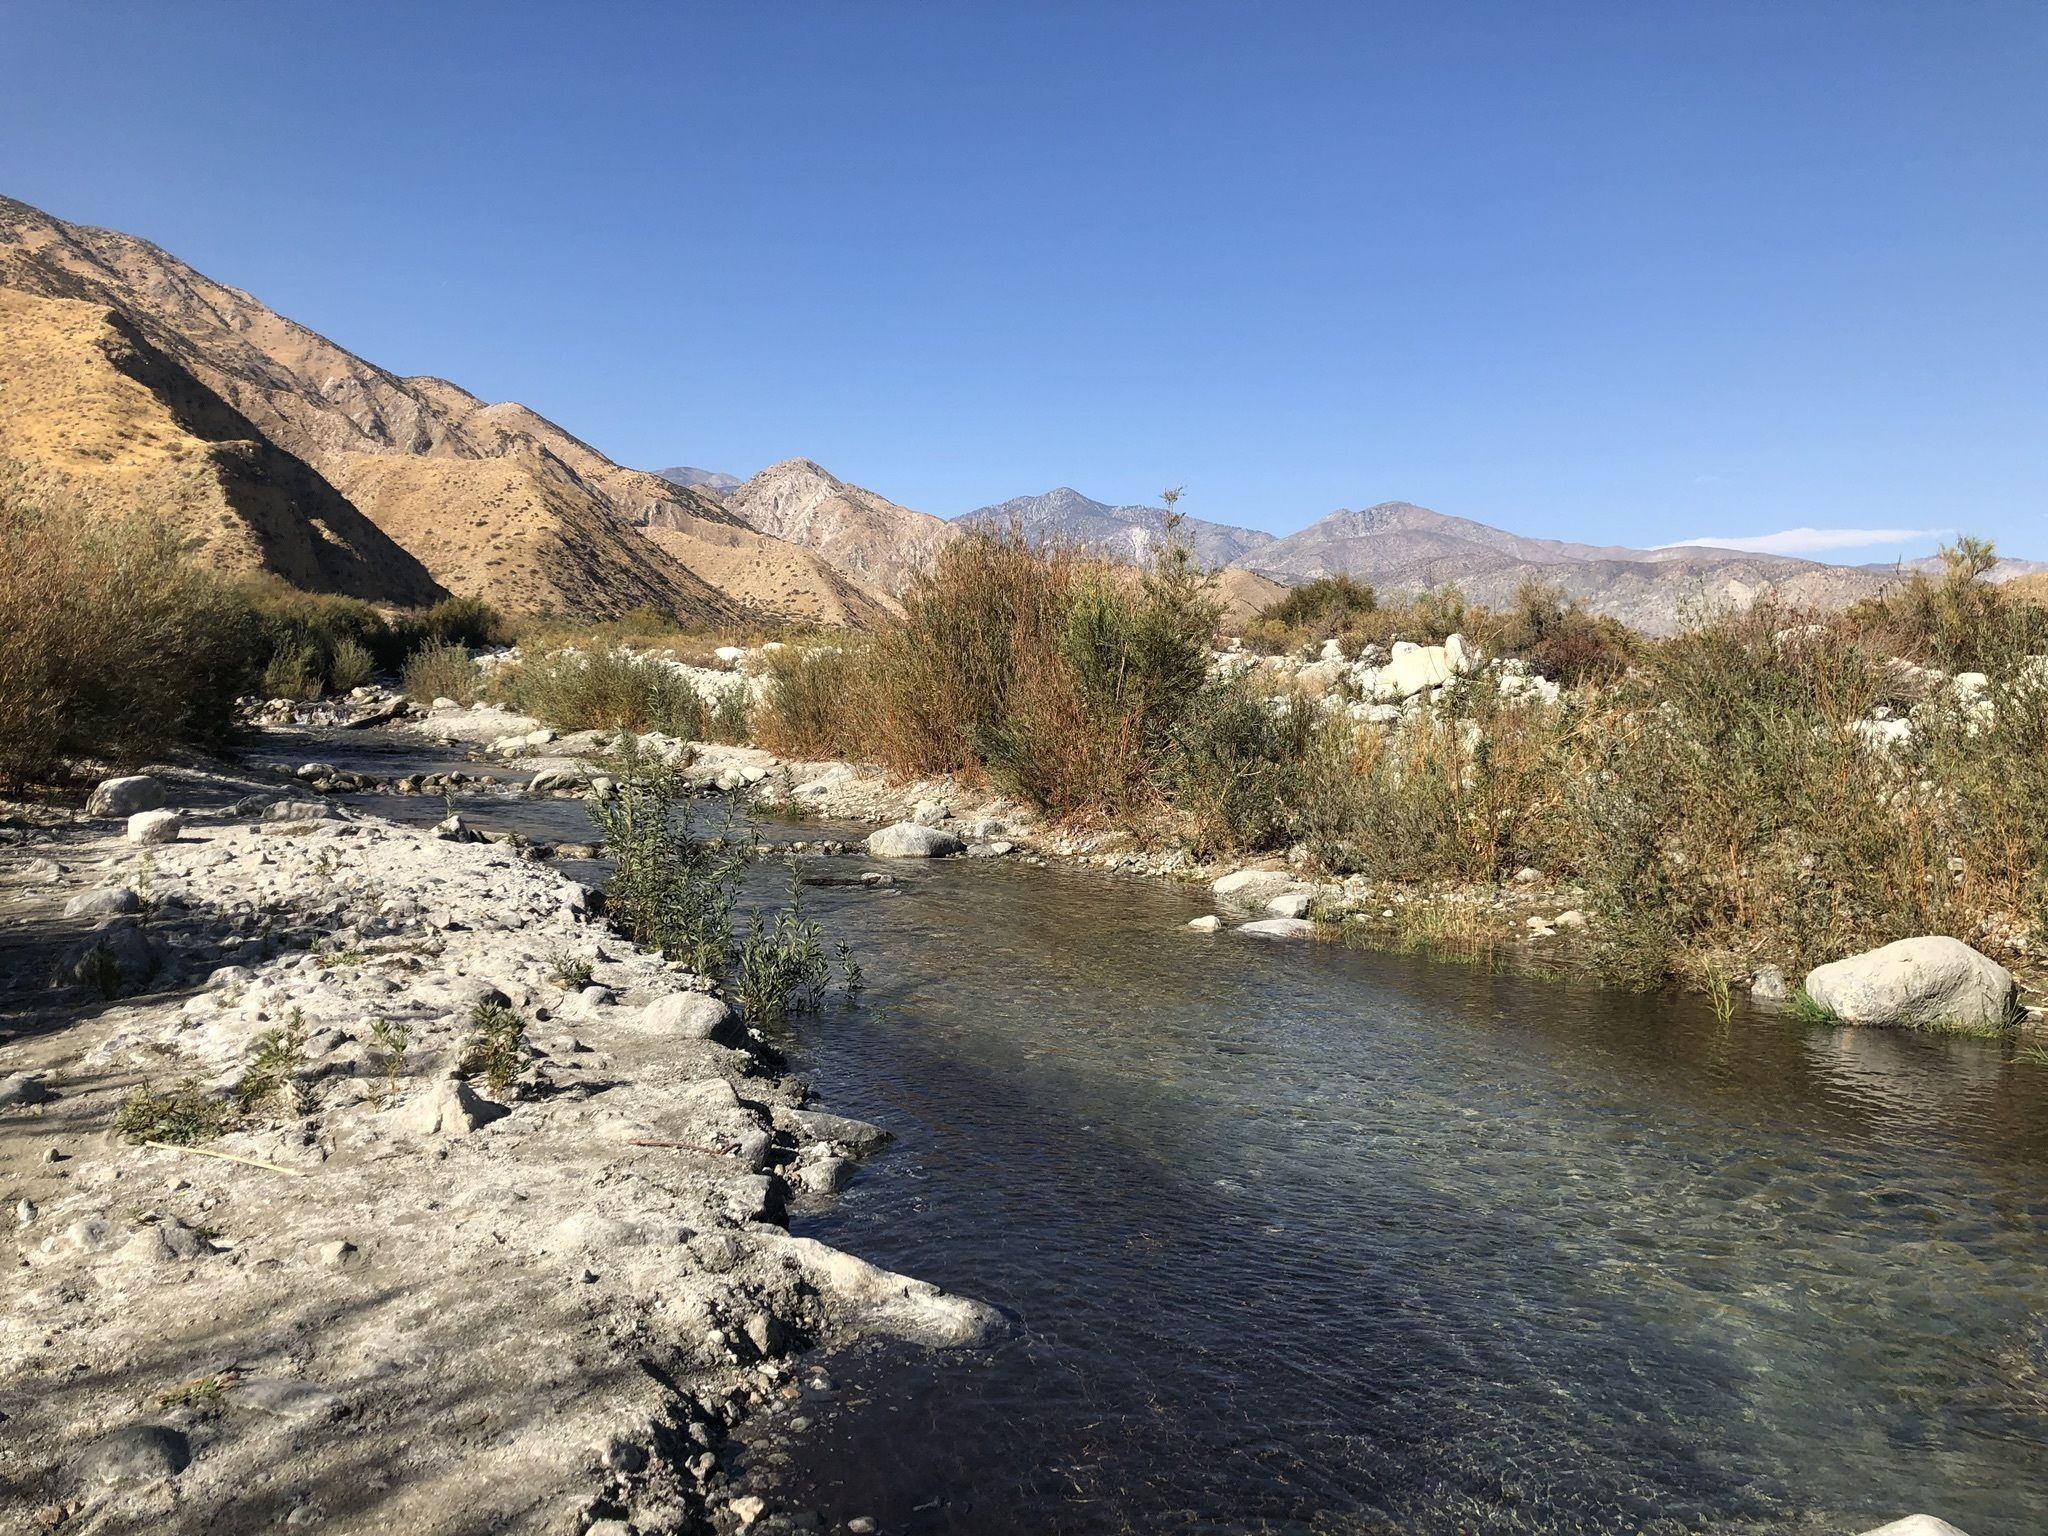 PEAK: White Water Canyon Loop - DIFFICULTY: 2/5 SCENERY: wild flowers, oasis, wild life, washed out, river, scramble, rocksFUN FACT: puppers/doggos/floofs are allowed on trail (on leash...but still)